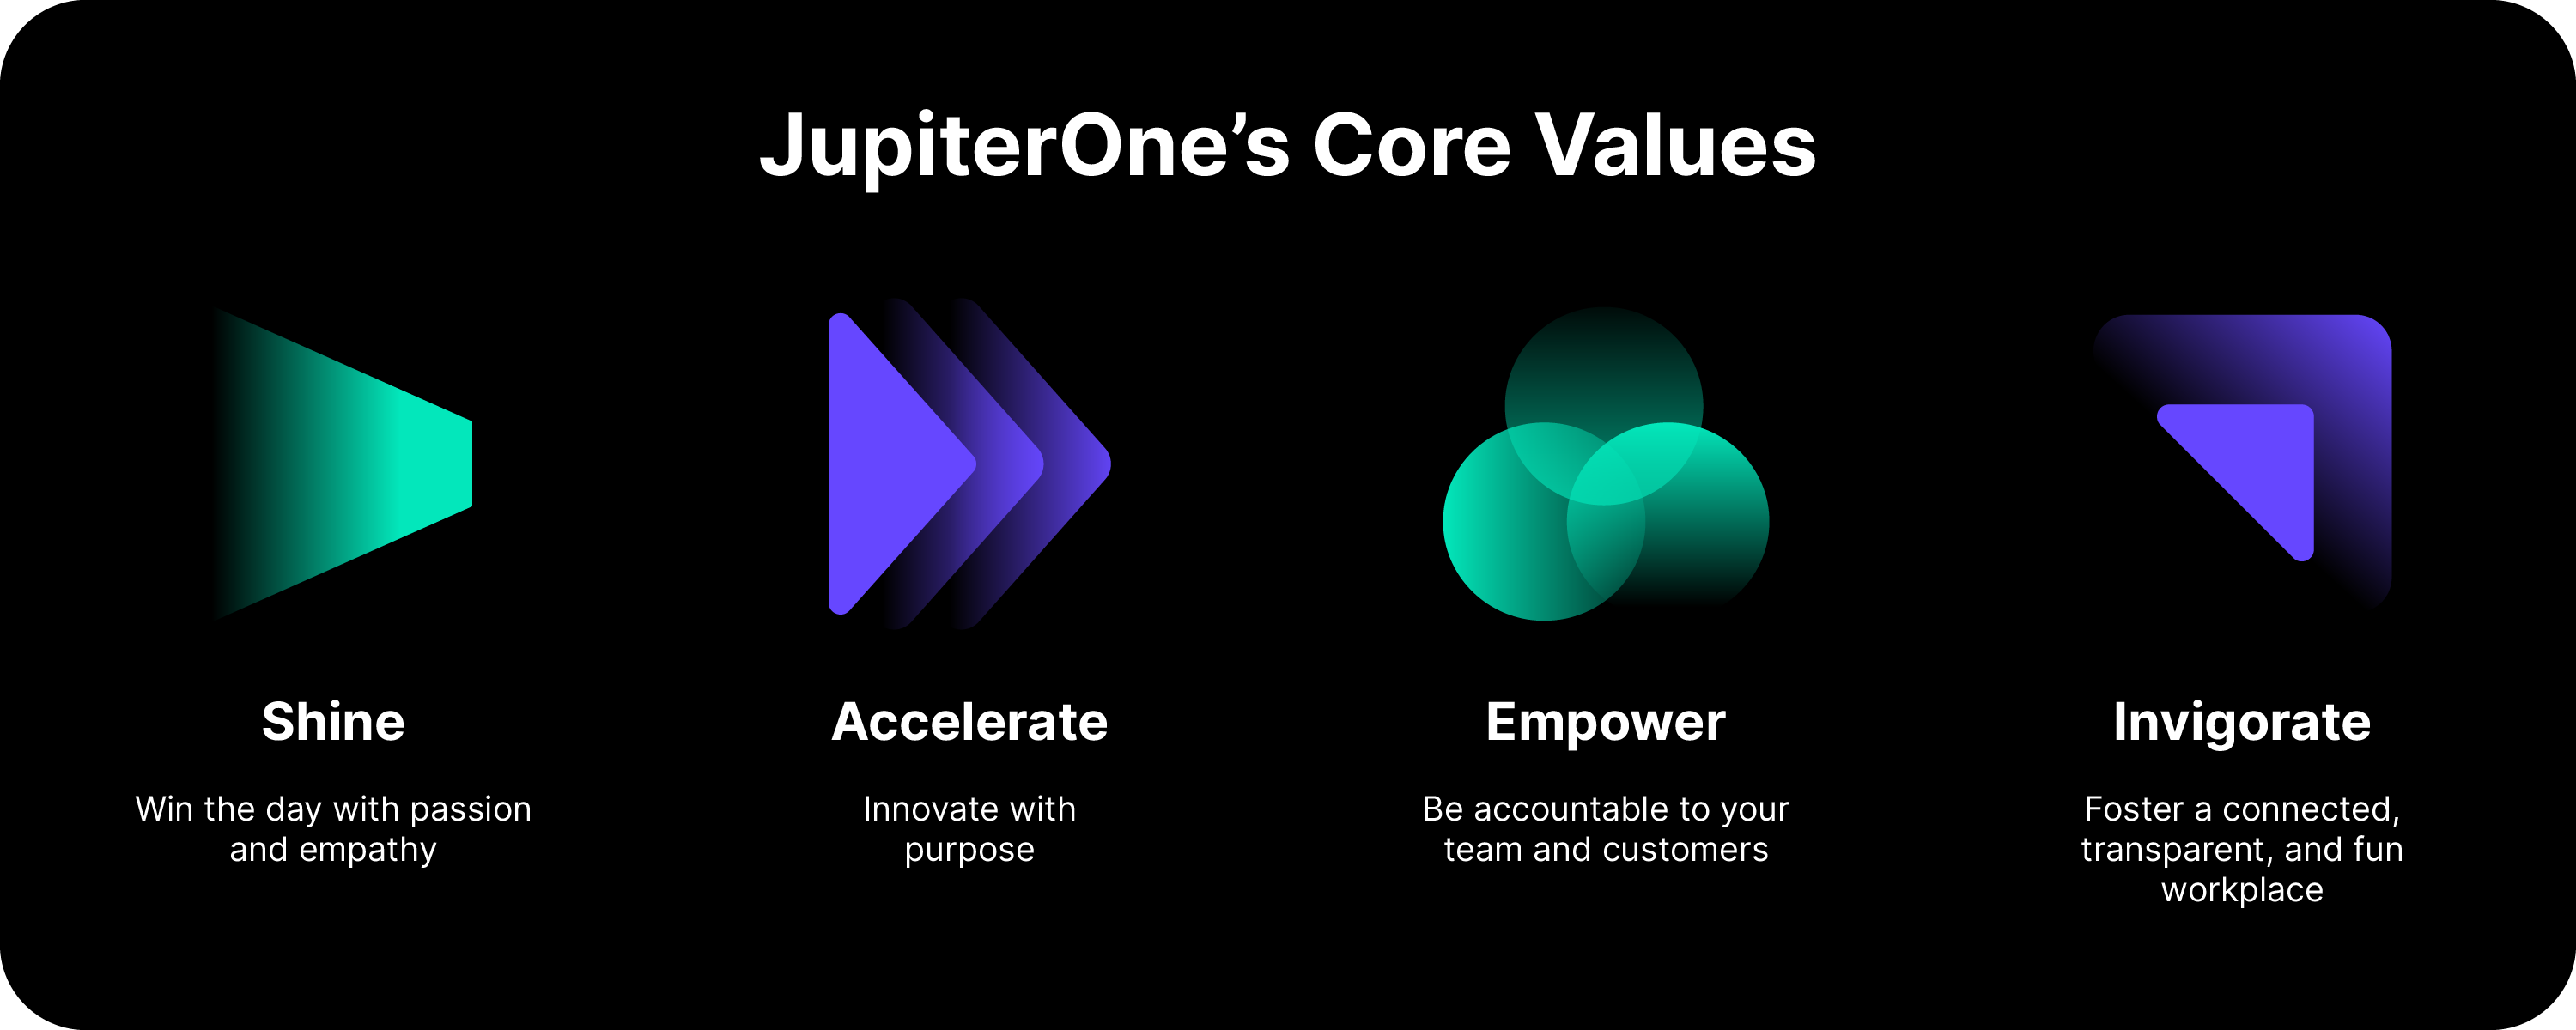 Core Values: Shine: Win the day with passion and empathy. Empower: Be accountable to your team and customers. Accelerate: Innovate with purpose. Invigorate: Foster a connected, transparent, and fun workplace.